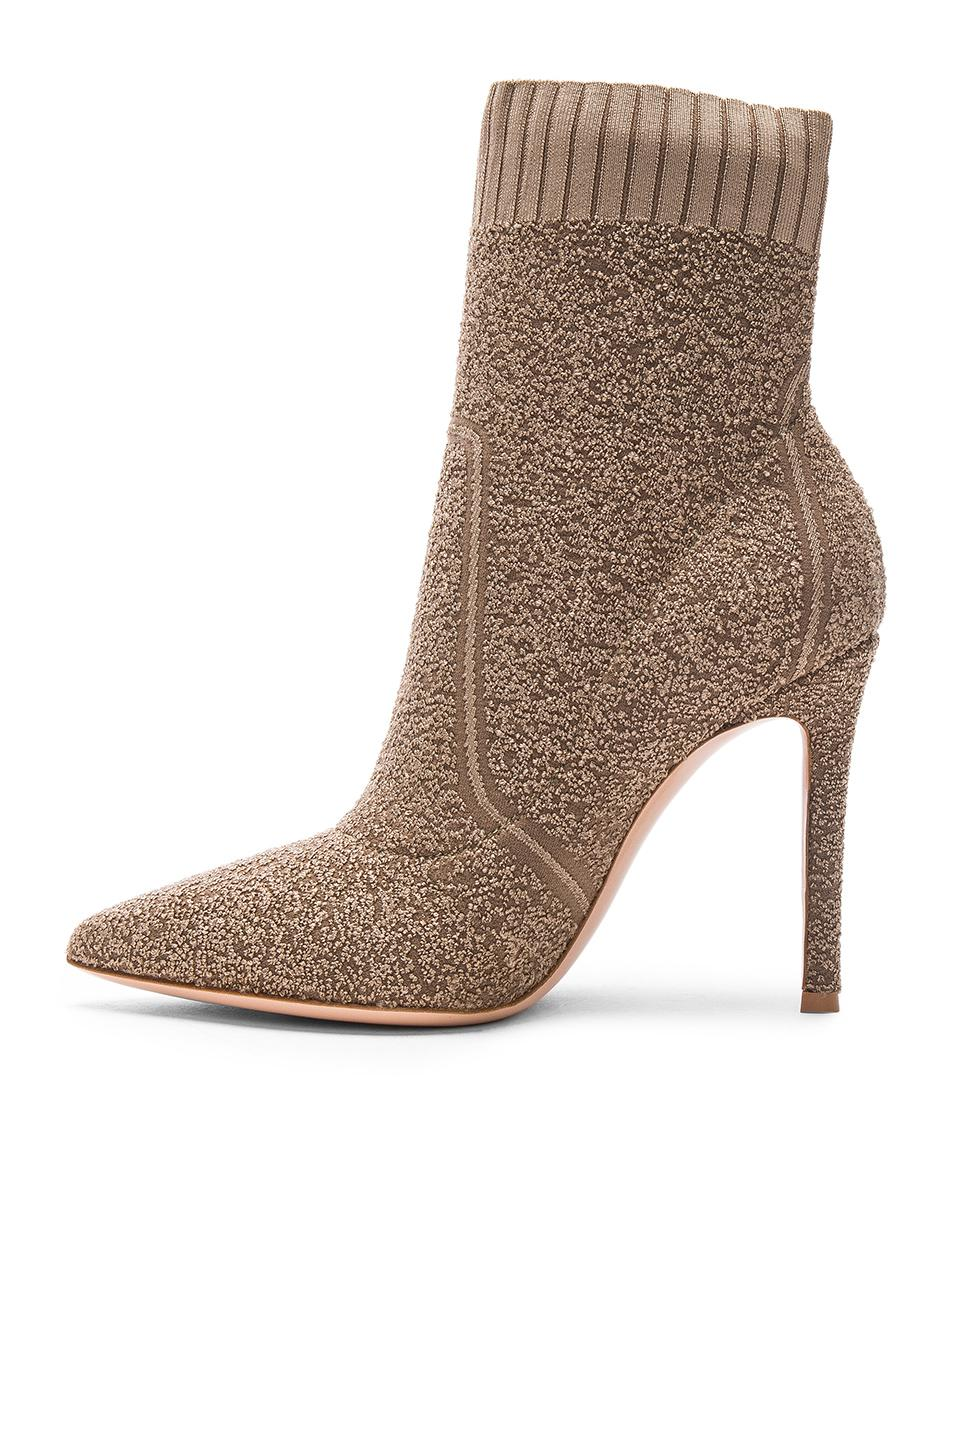 Gianvito Rossi Boucle Knit Katie Ankle Booties in . 0CAWMNG0CT